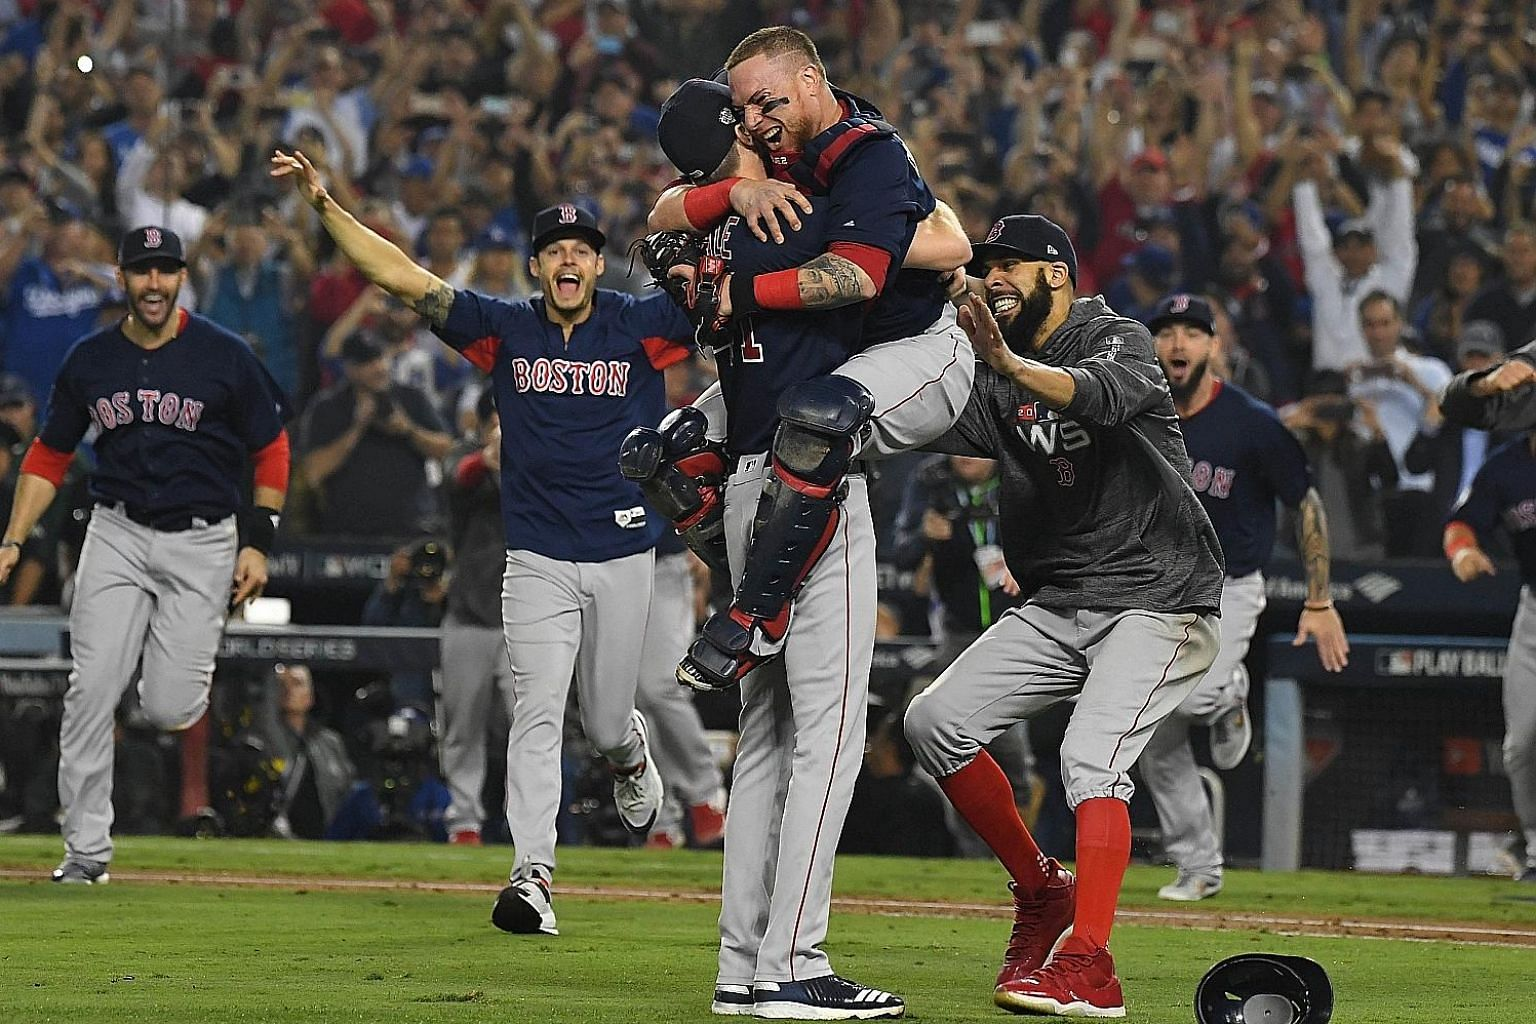 Boston Red Sox players celebrate after defeating the Los Angeles Dodgers 5-1 in Game 5 of the World Series to clinch the title. The Red Sox prevailed by a 4-1 margin in a best-of-seven series. The title triumph was Boston's fourth in 15 years, ninth